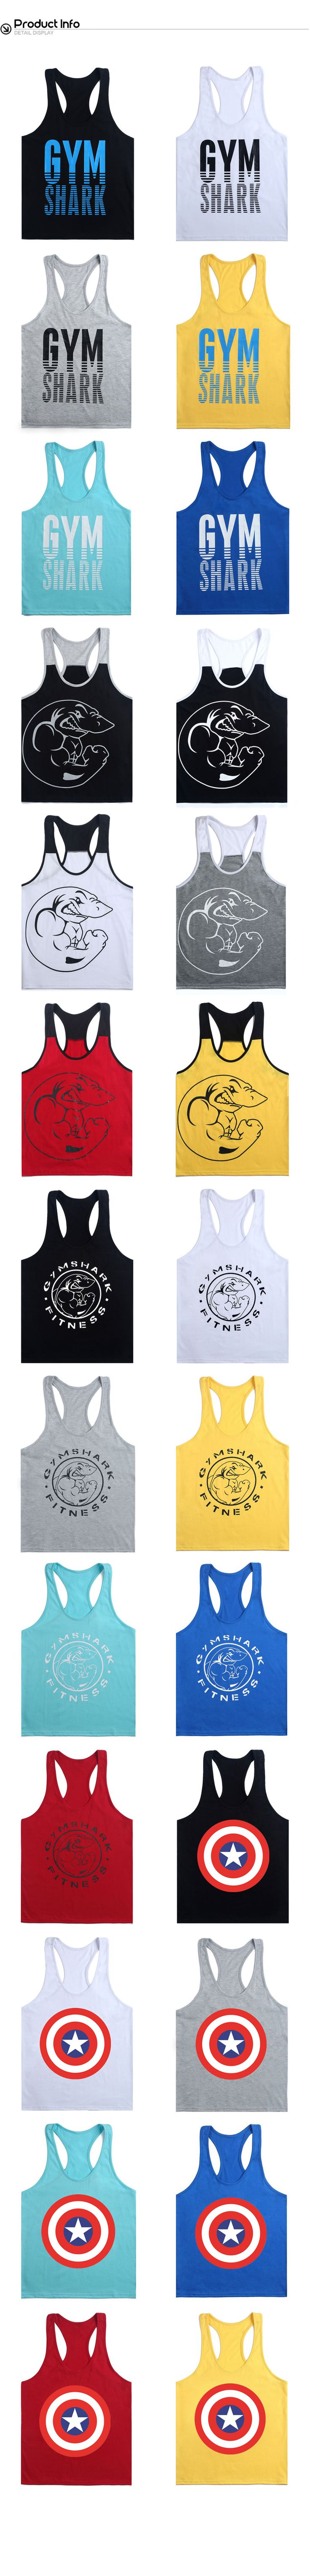 CIC collection Men's Letter Printed Workot Fitness Gym Tank Top